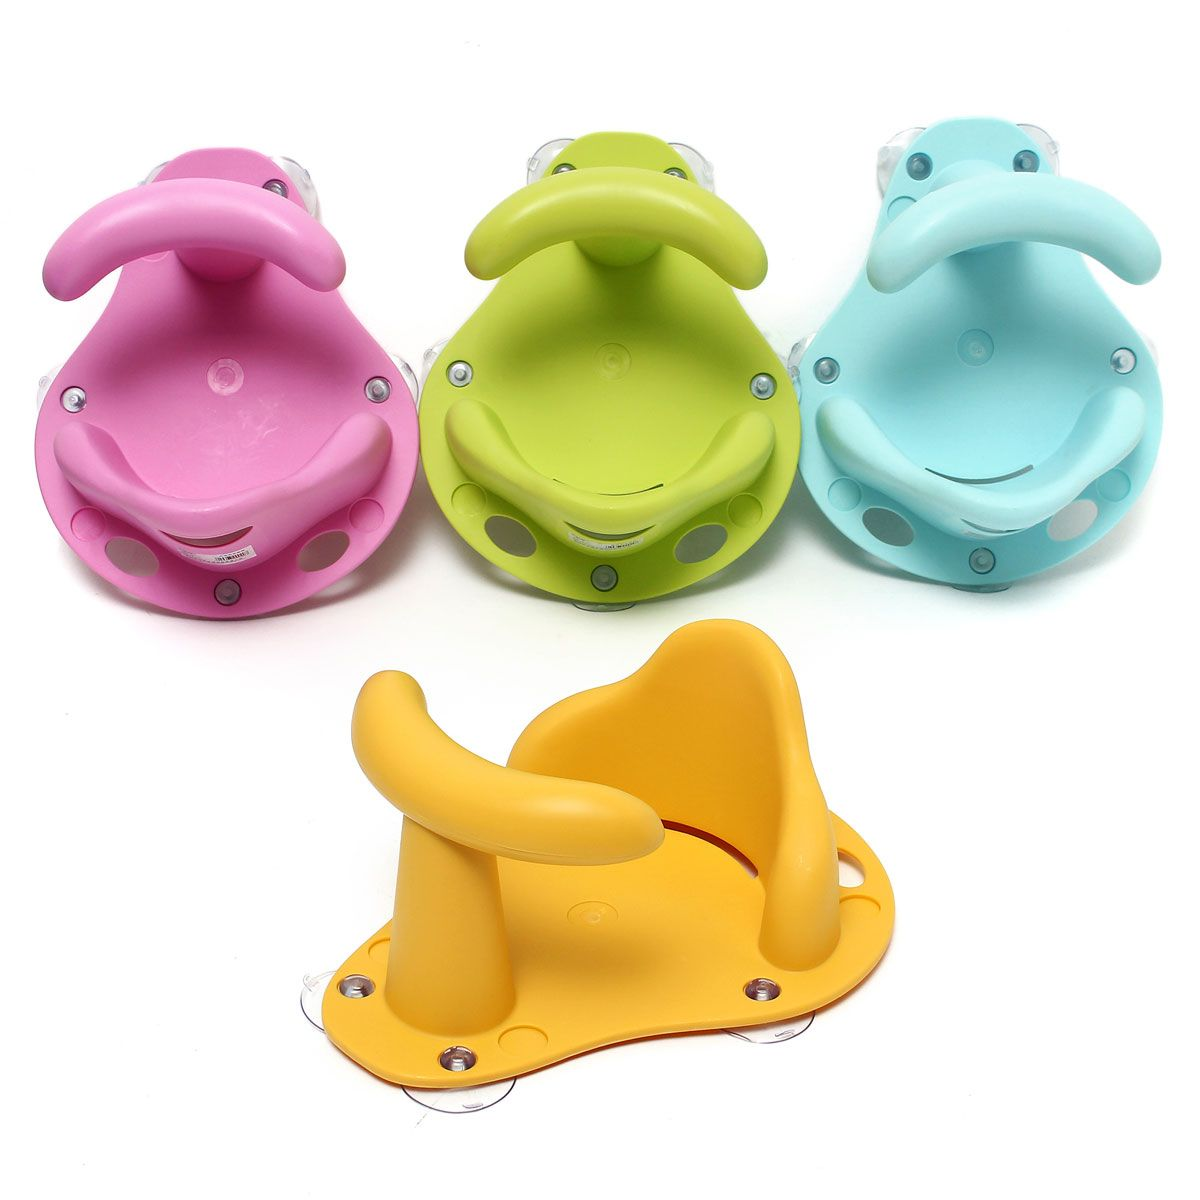 4 colors baby bath tub ring seat infant children shower toddler 4 colors baby bath tub ring seat infant children shower toddler kids anti slip security safety